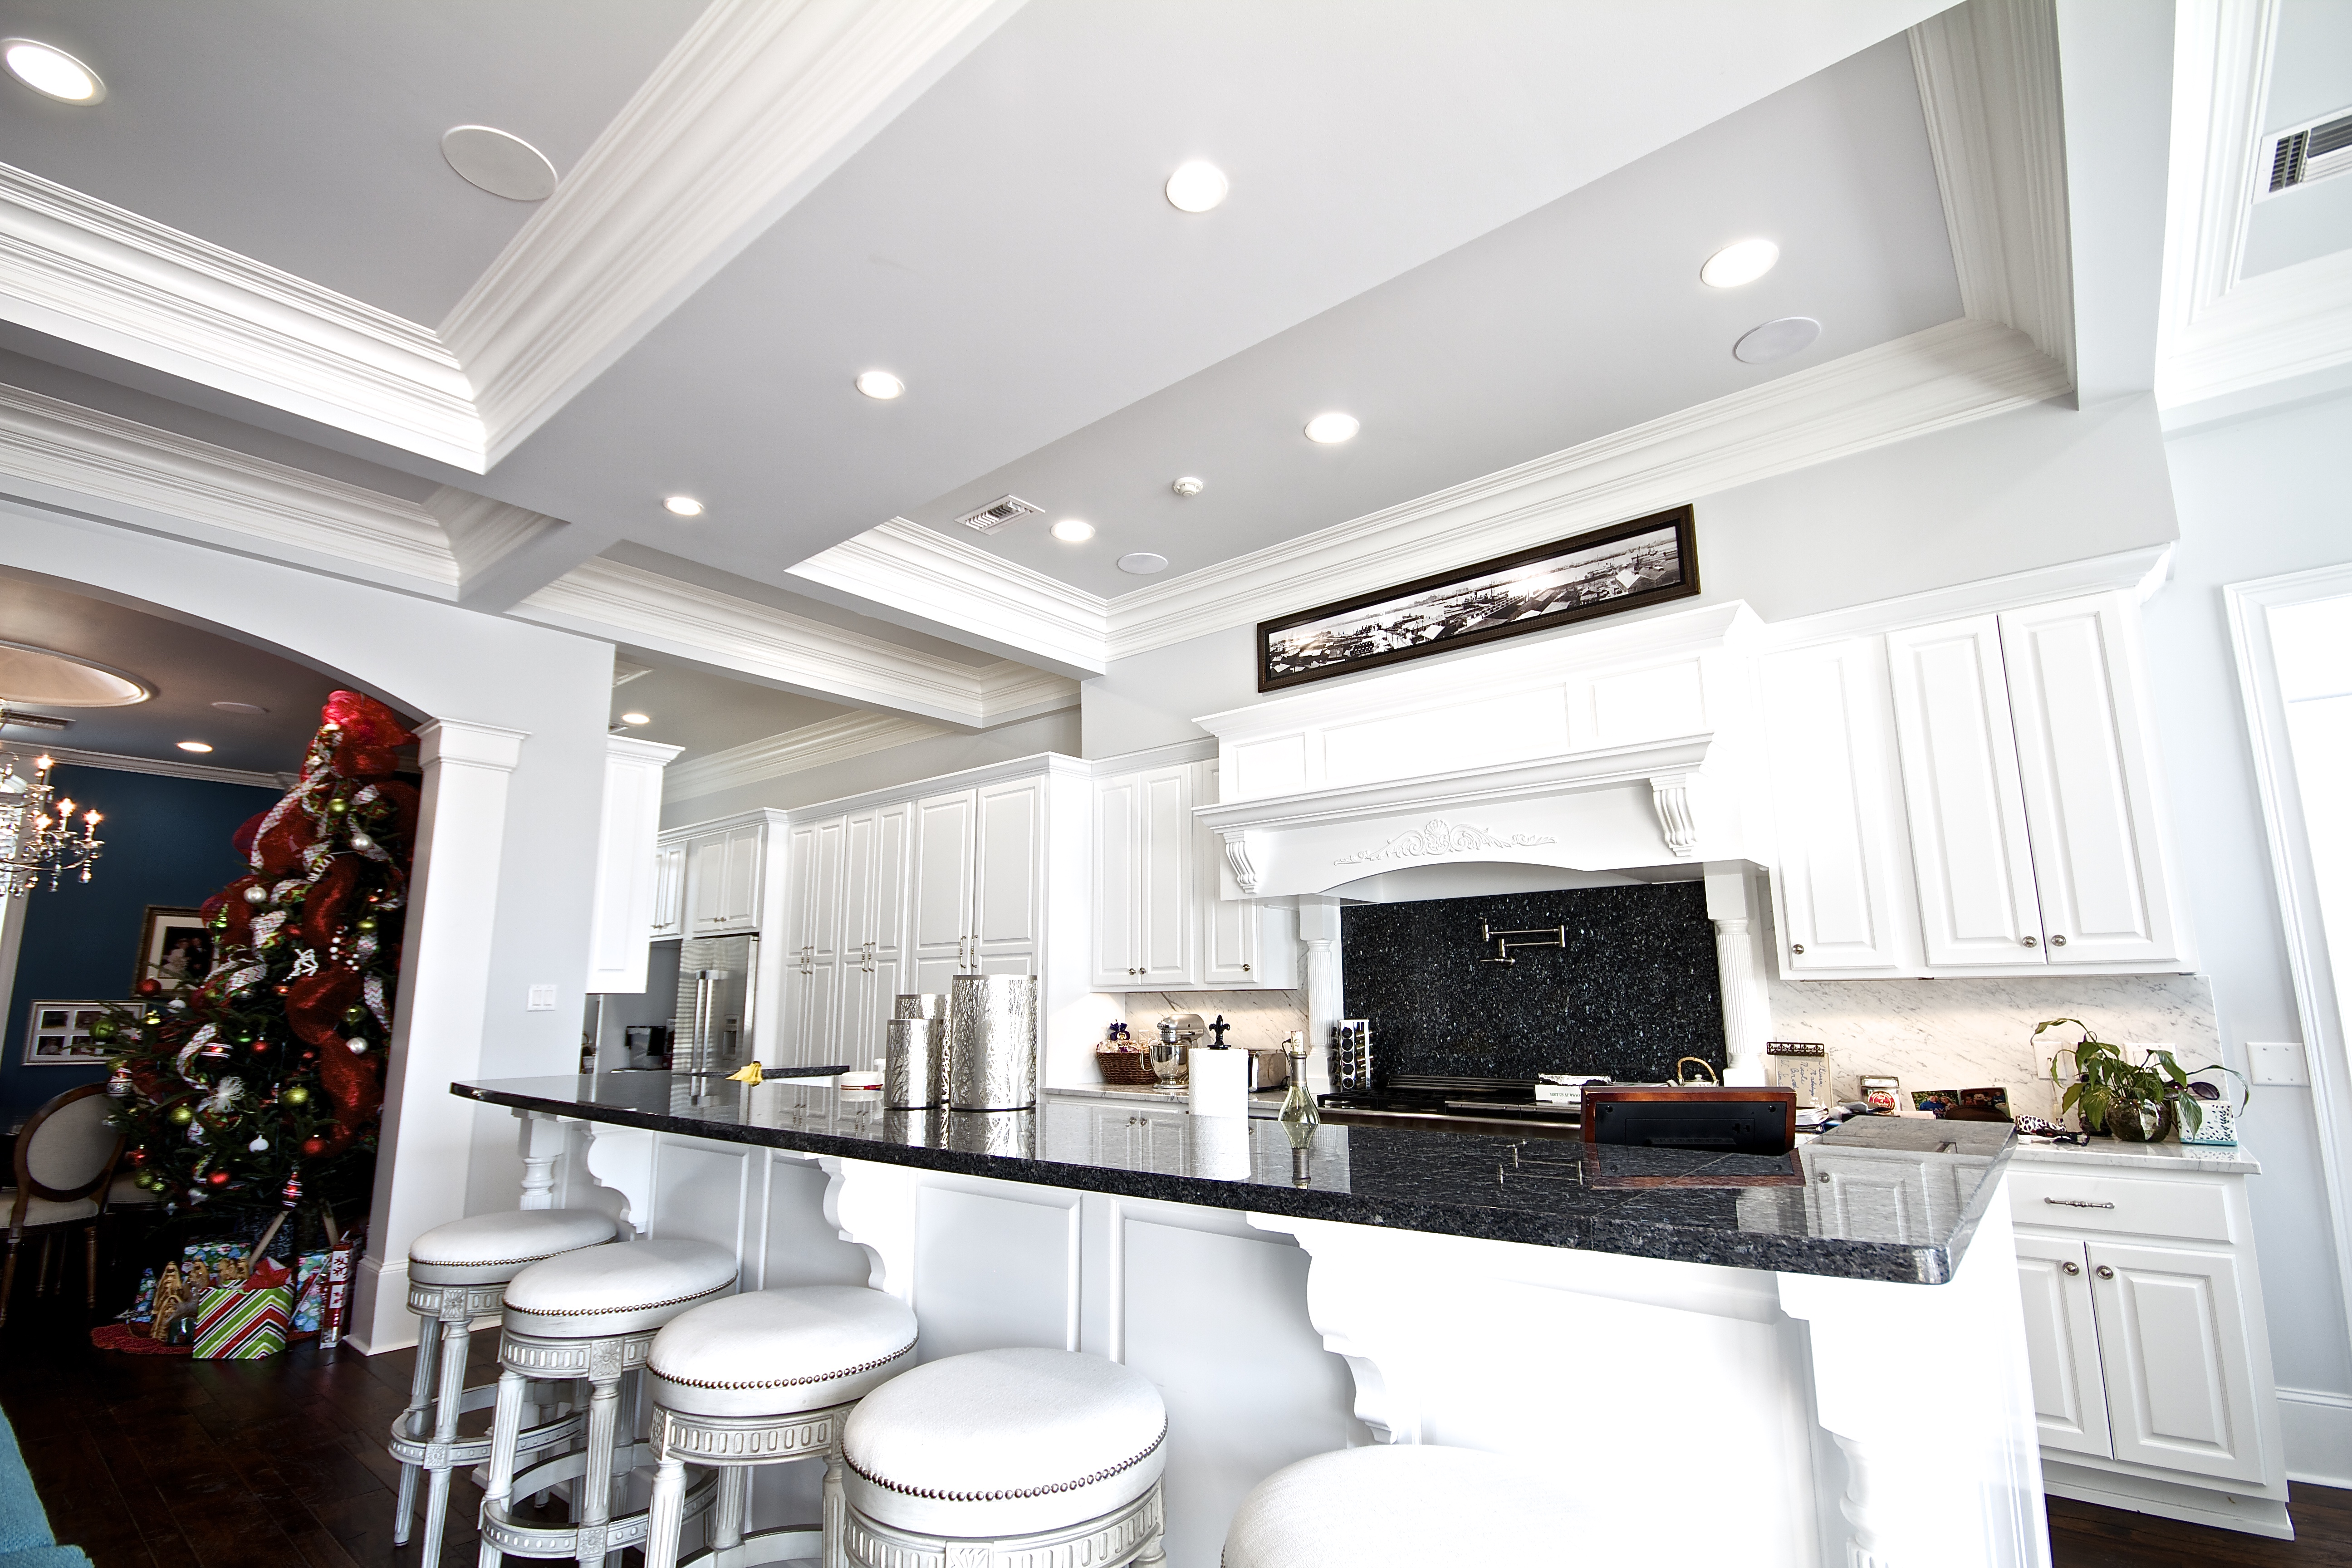 NOLA LED | Recessed Cans